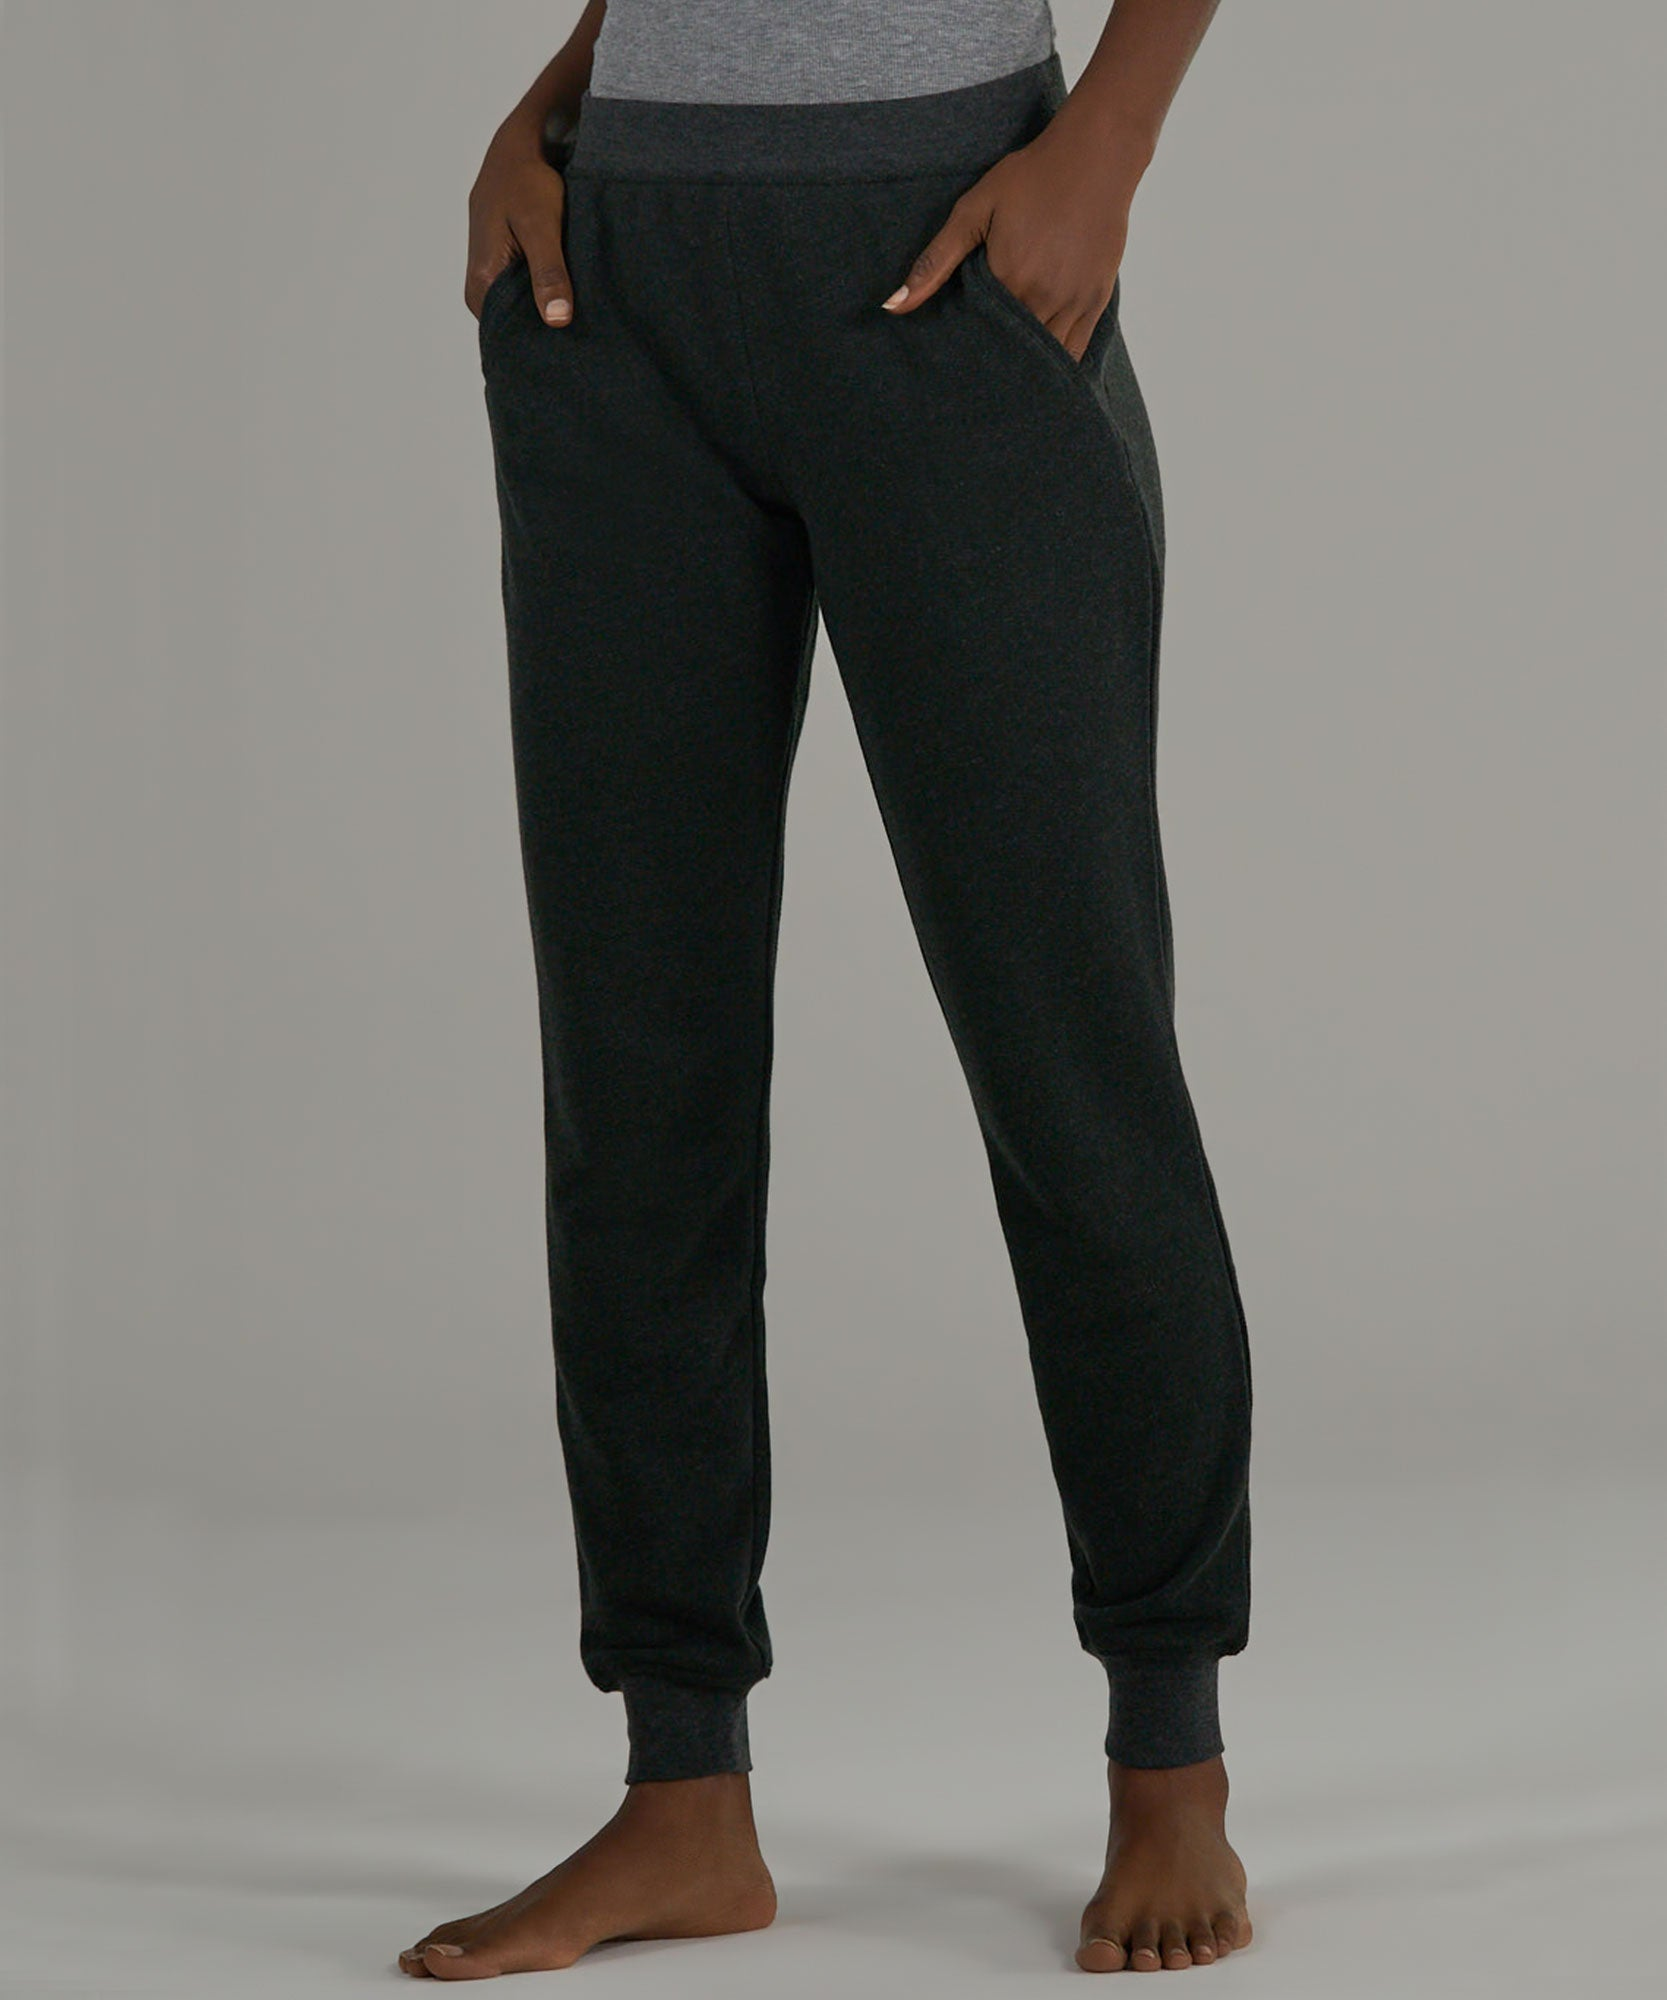 Heather Charcoal French Terry Sweatpants - Women's Luxe Loungewear by ATM Anthony Thomas Melillo